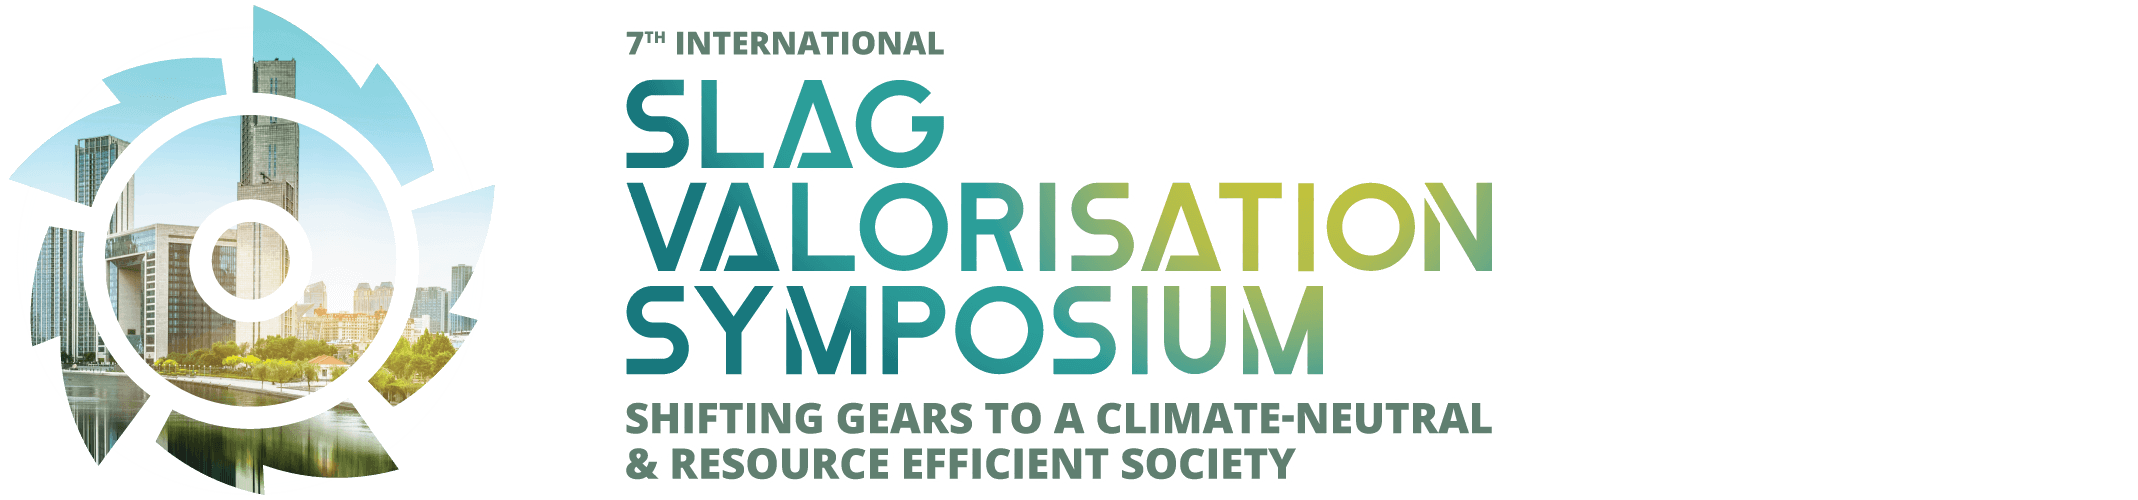 7th International Slag Valorisation Symposium